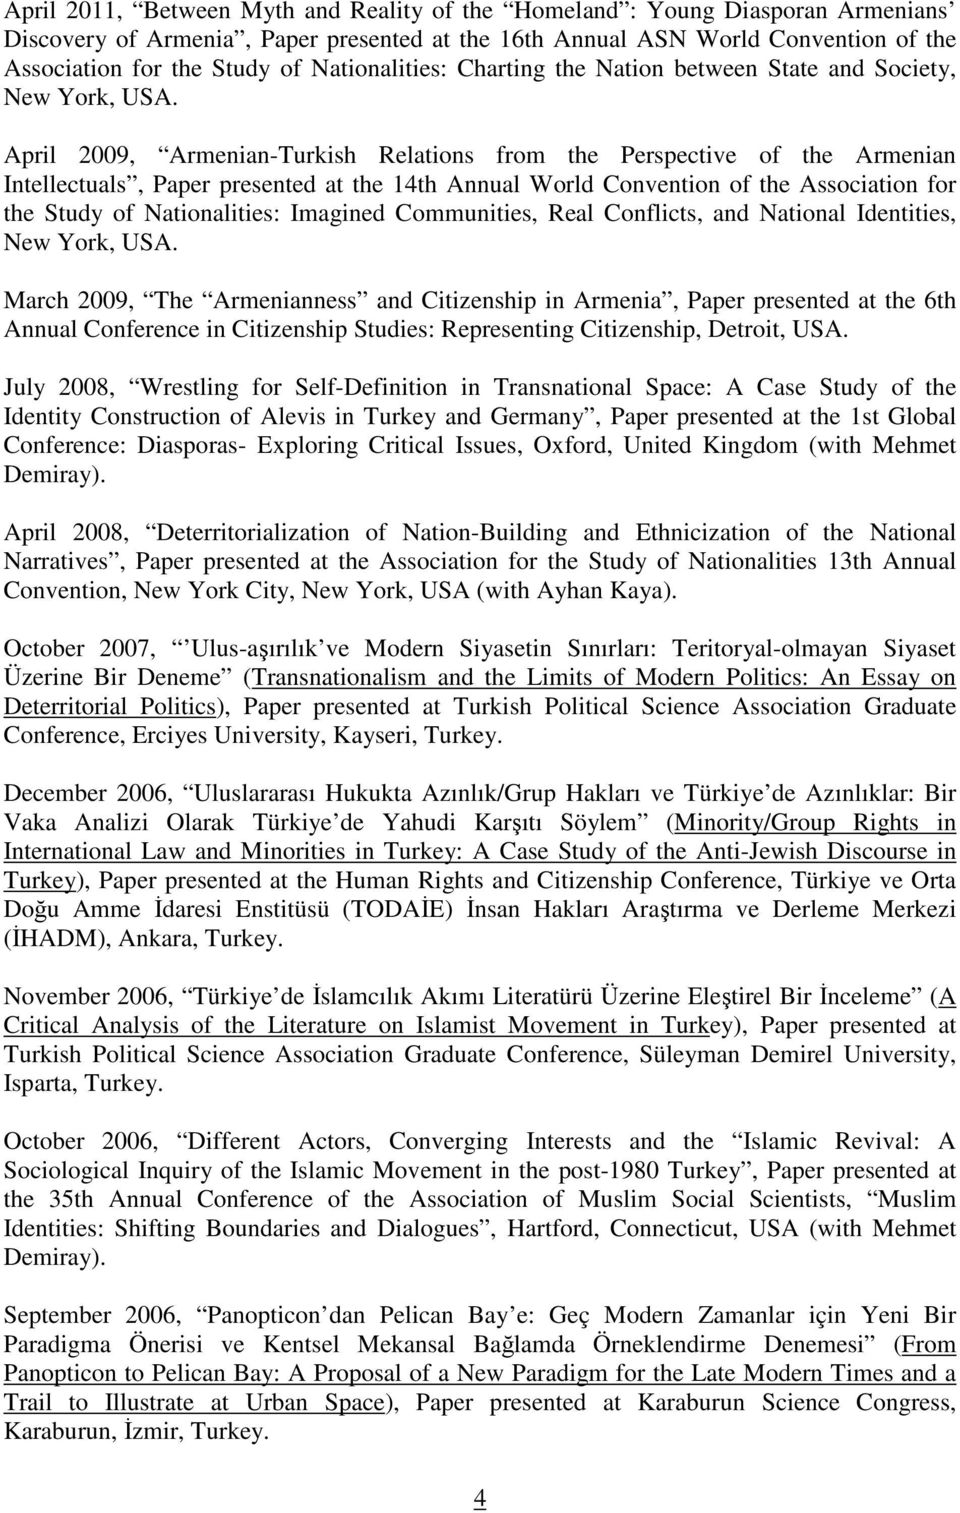 April 2009, Armenian-Turkish Relations from the Perspective of the Armenian Intellectuals, Paper presented at the 14th Annual World Convention of the Association for the Study of Nationalities: